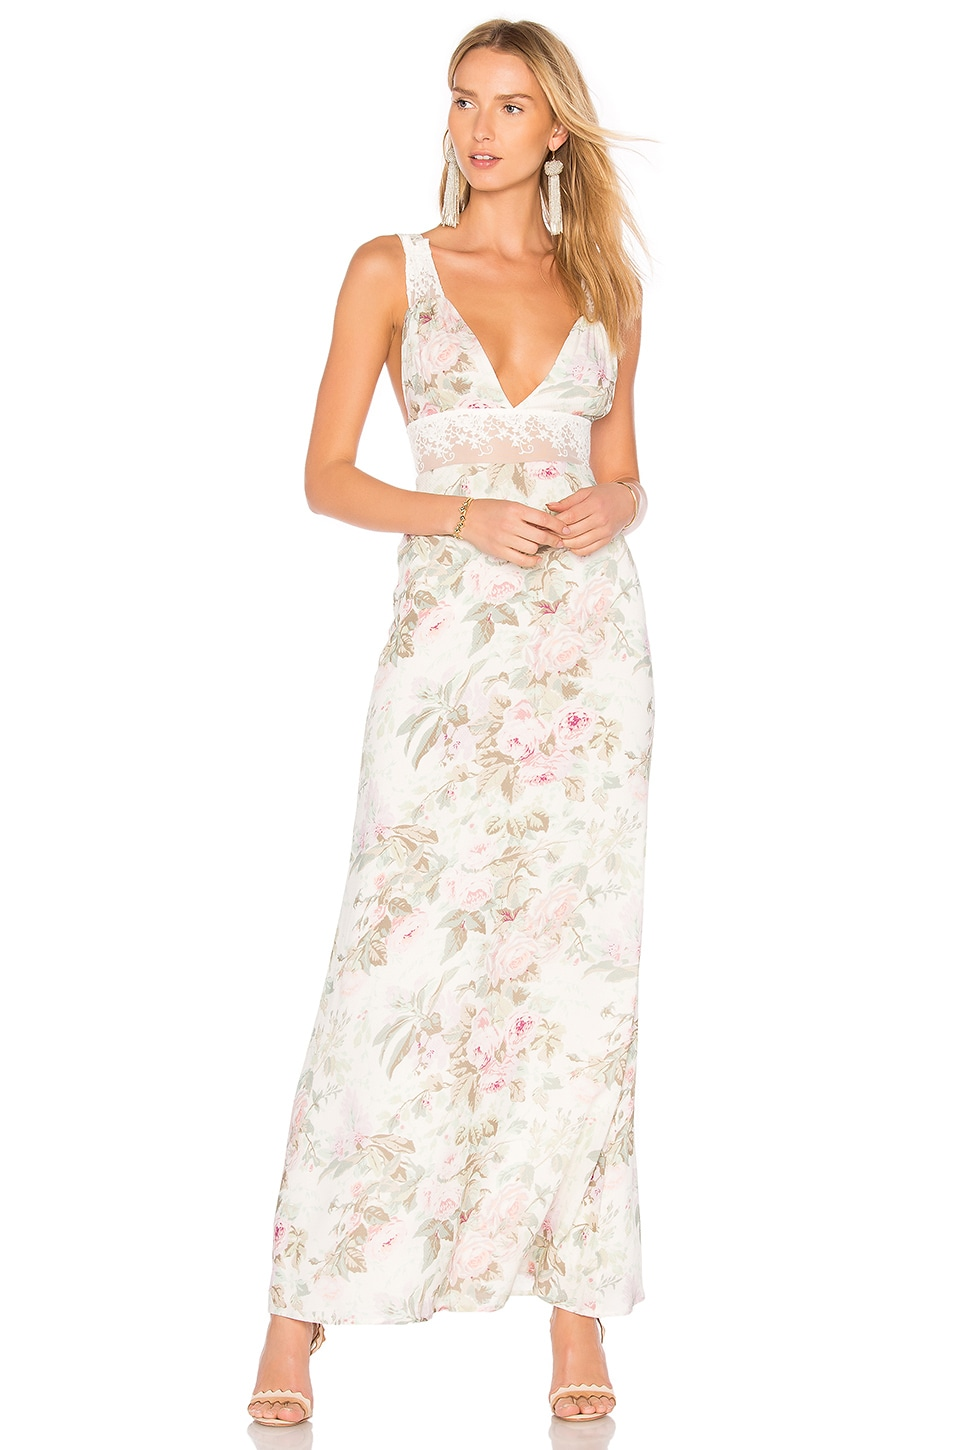 MAJORELLE MAGGIE Maxi Dress in Vintage